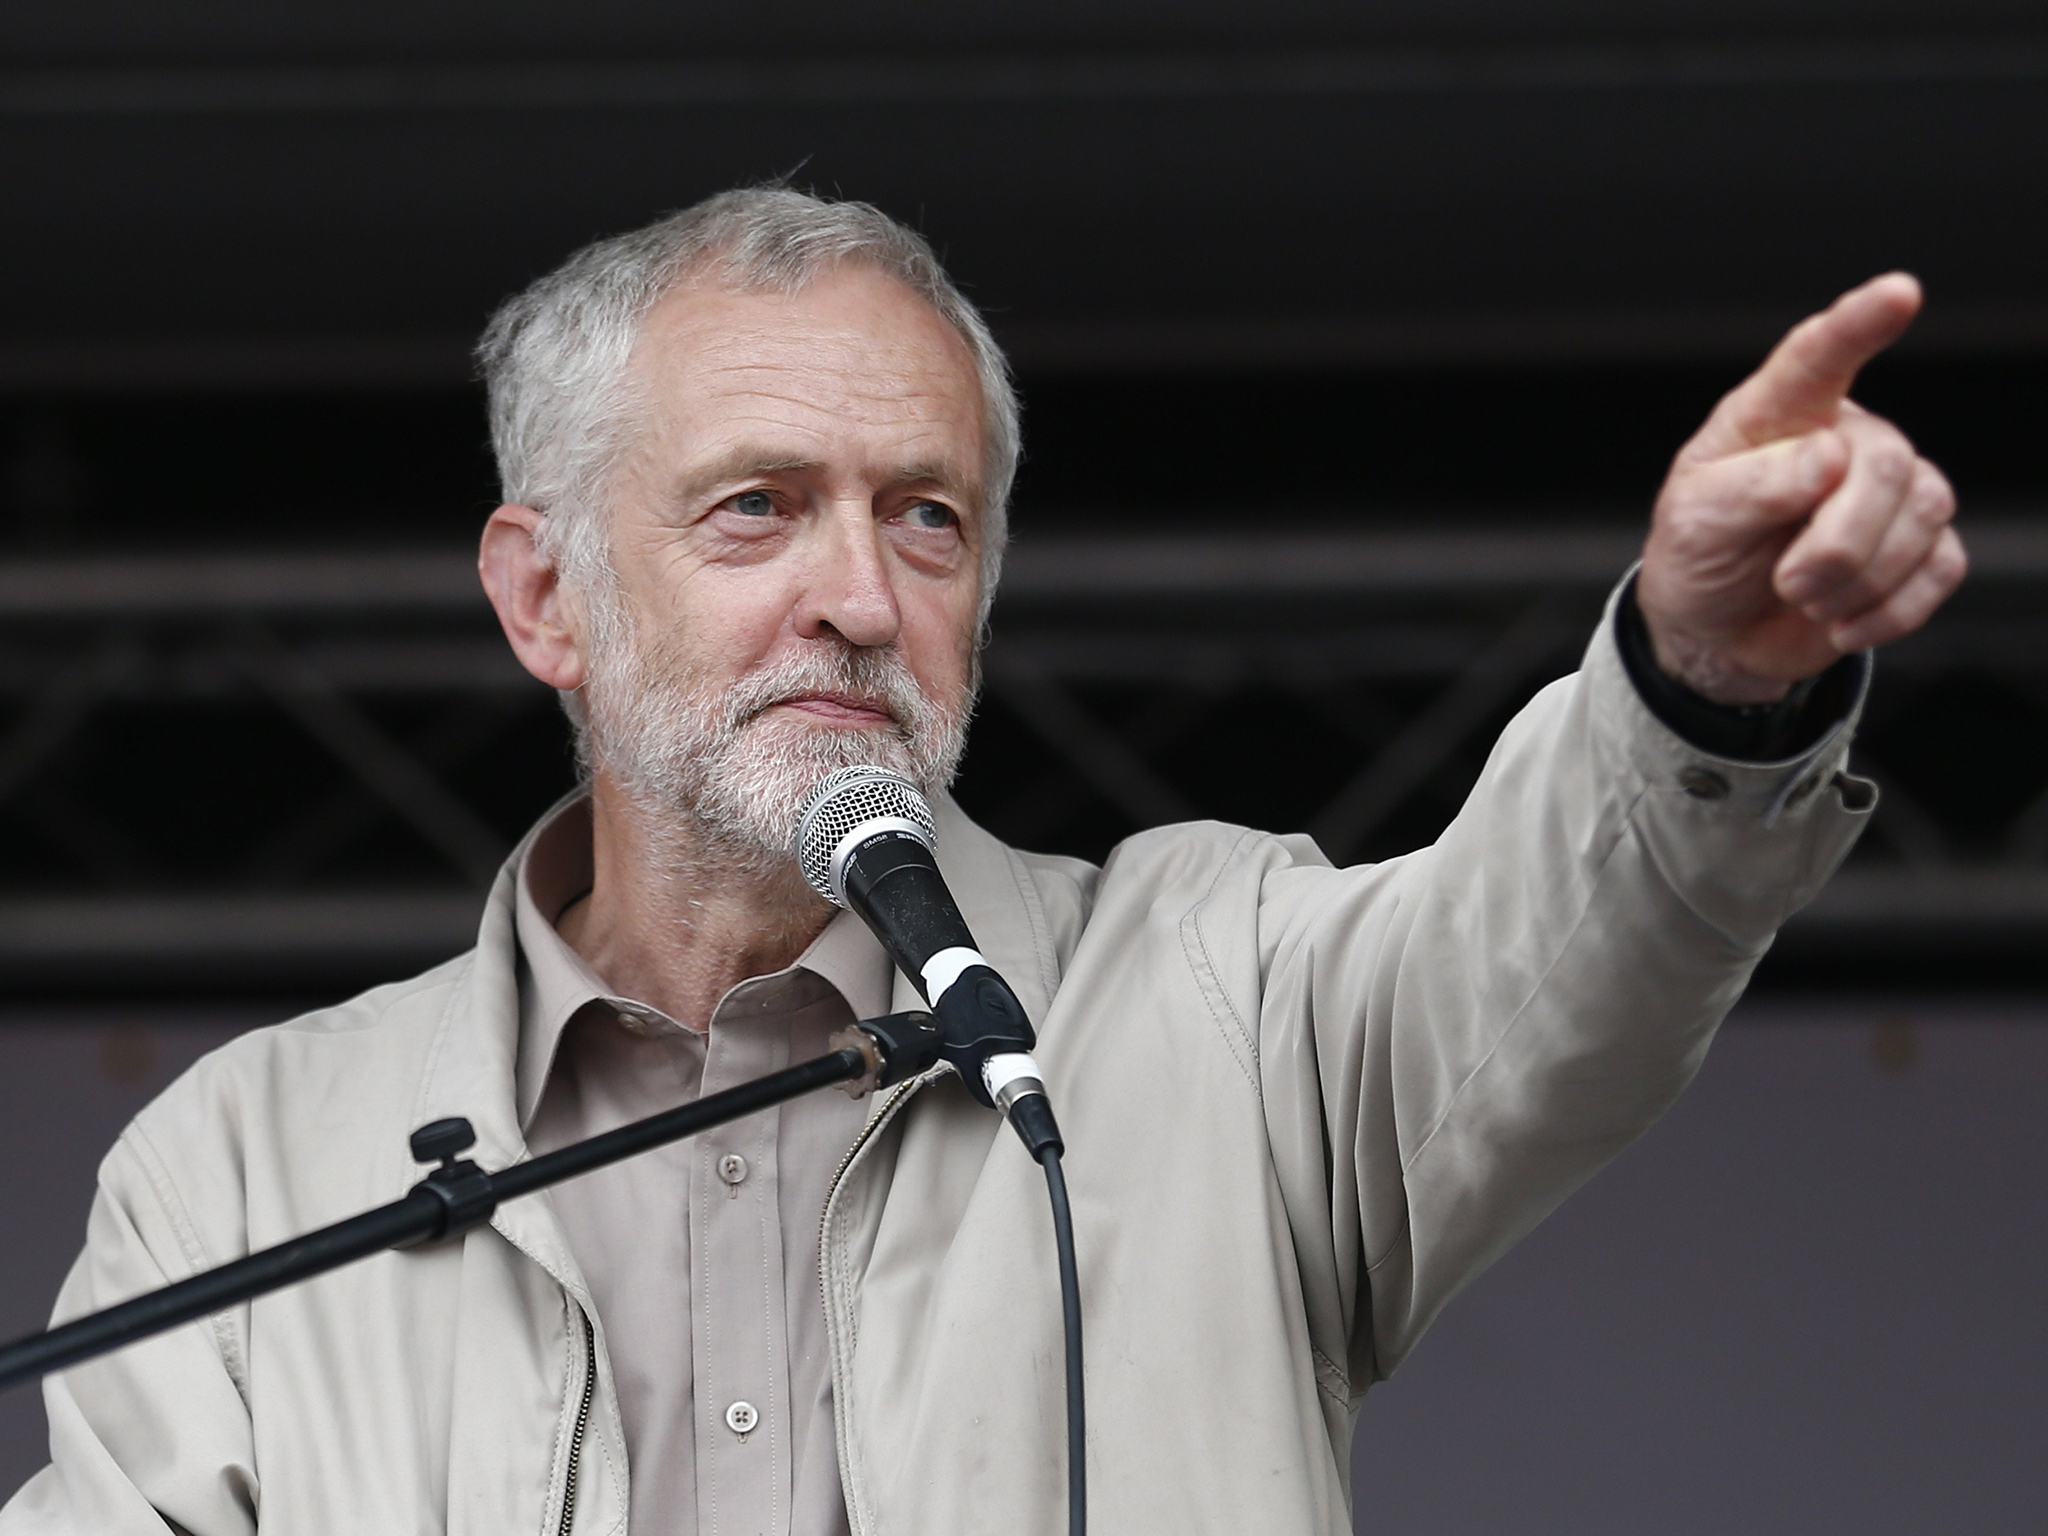 Pakistan needs to be treated with respect: UK's Corbyn